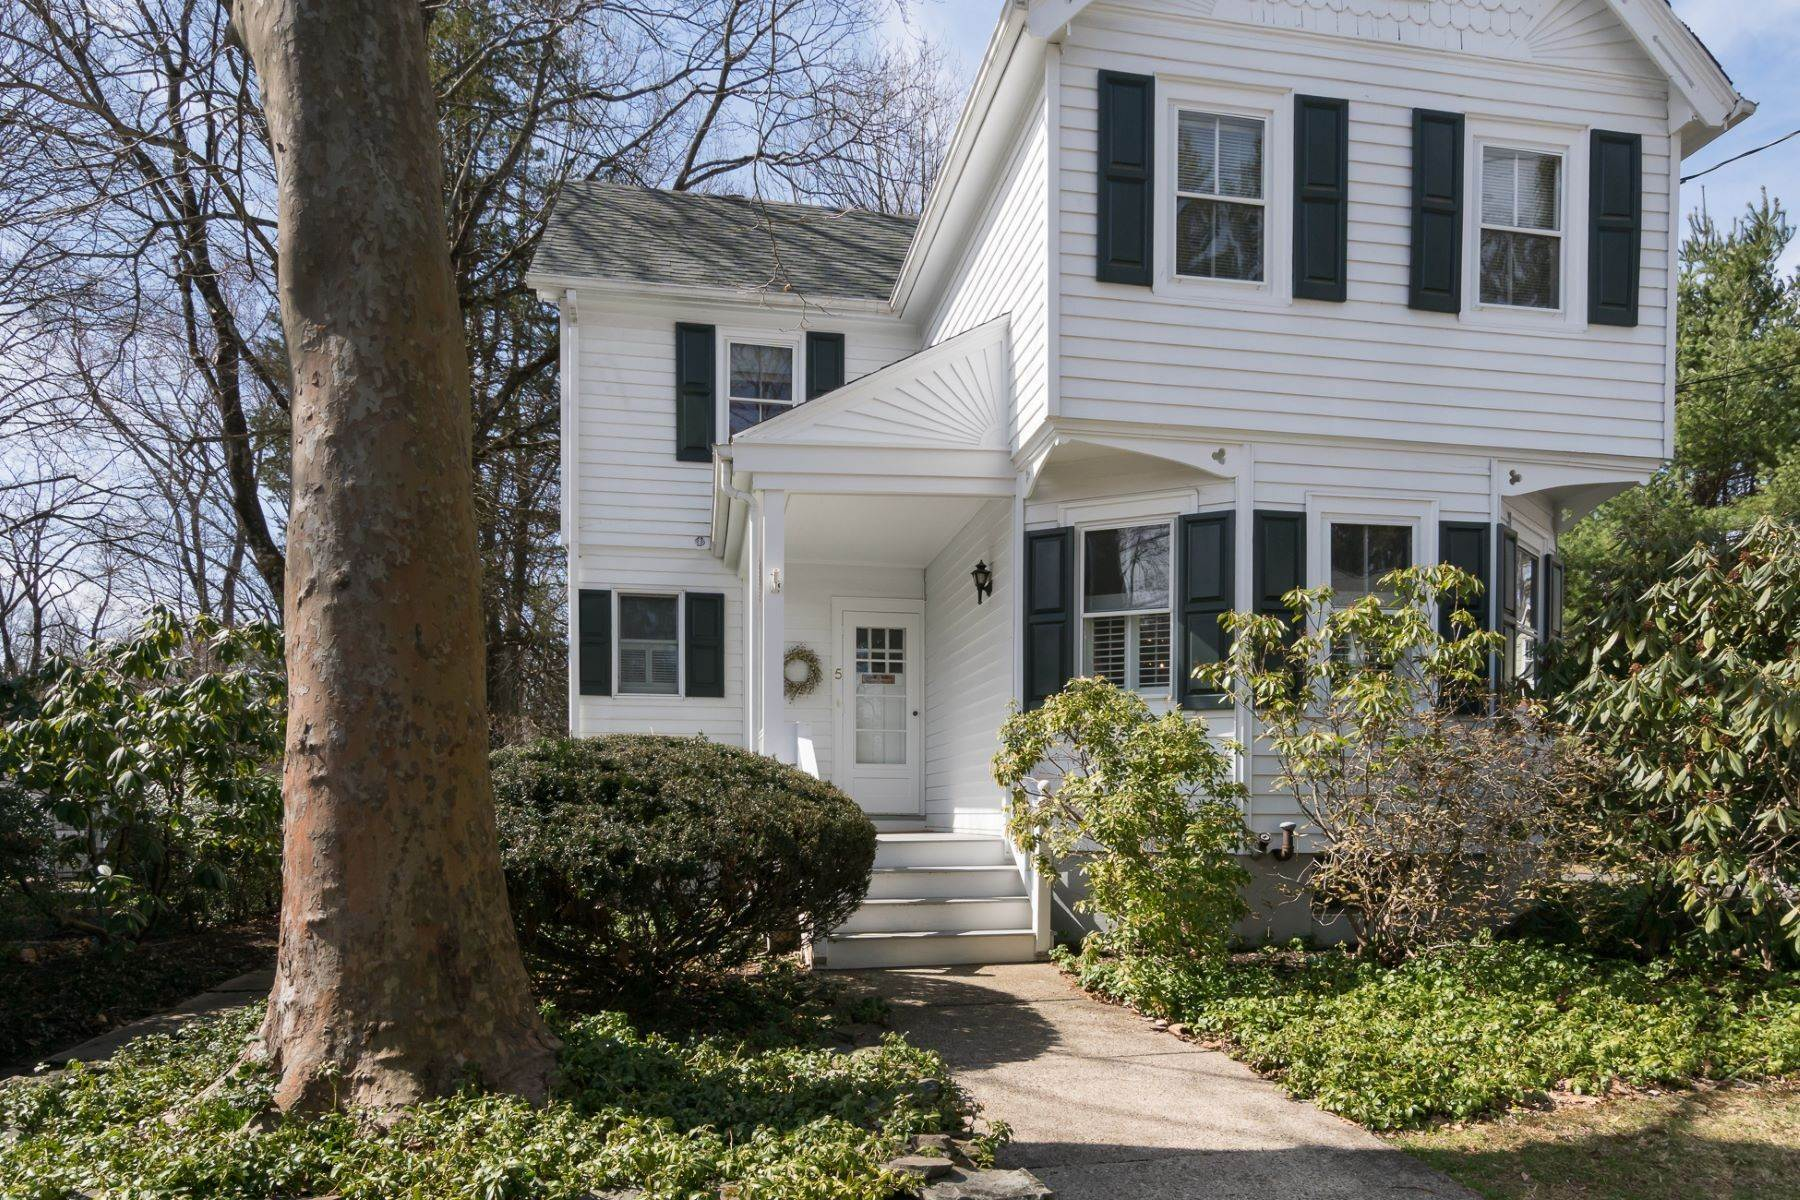 3. Single Family Homes for Sale at Storybook Home on a Stroll-Everywhere Street 5 Titus Avenue, Lawrenceville, New Jersey 08648 United States